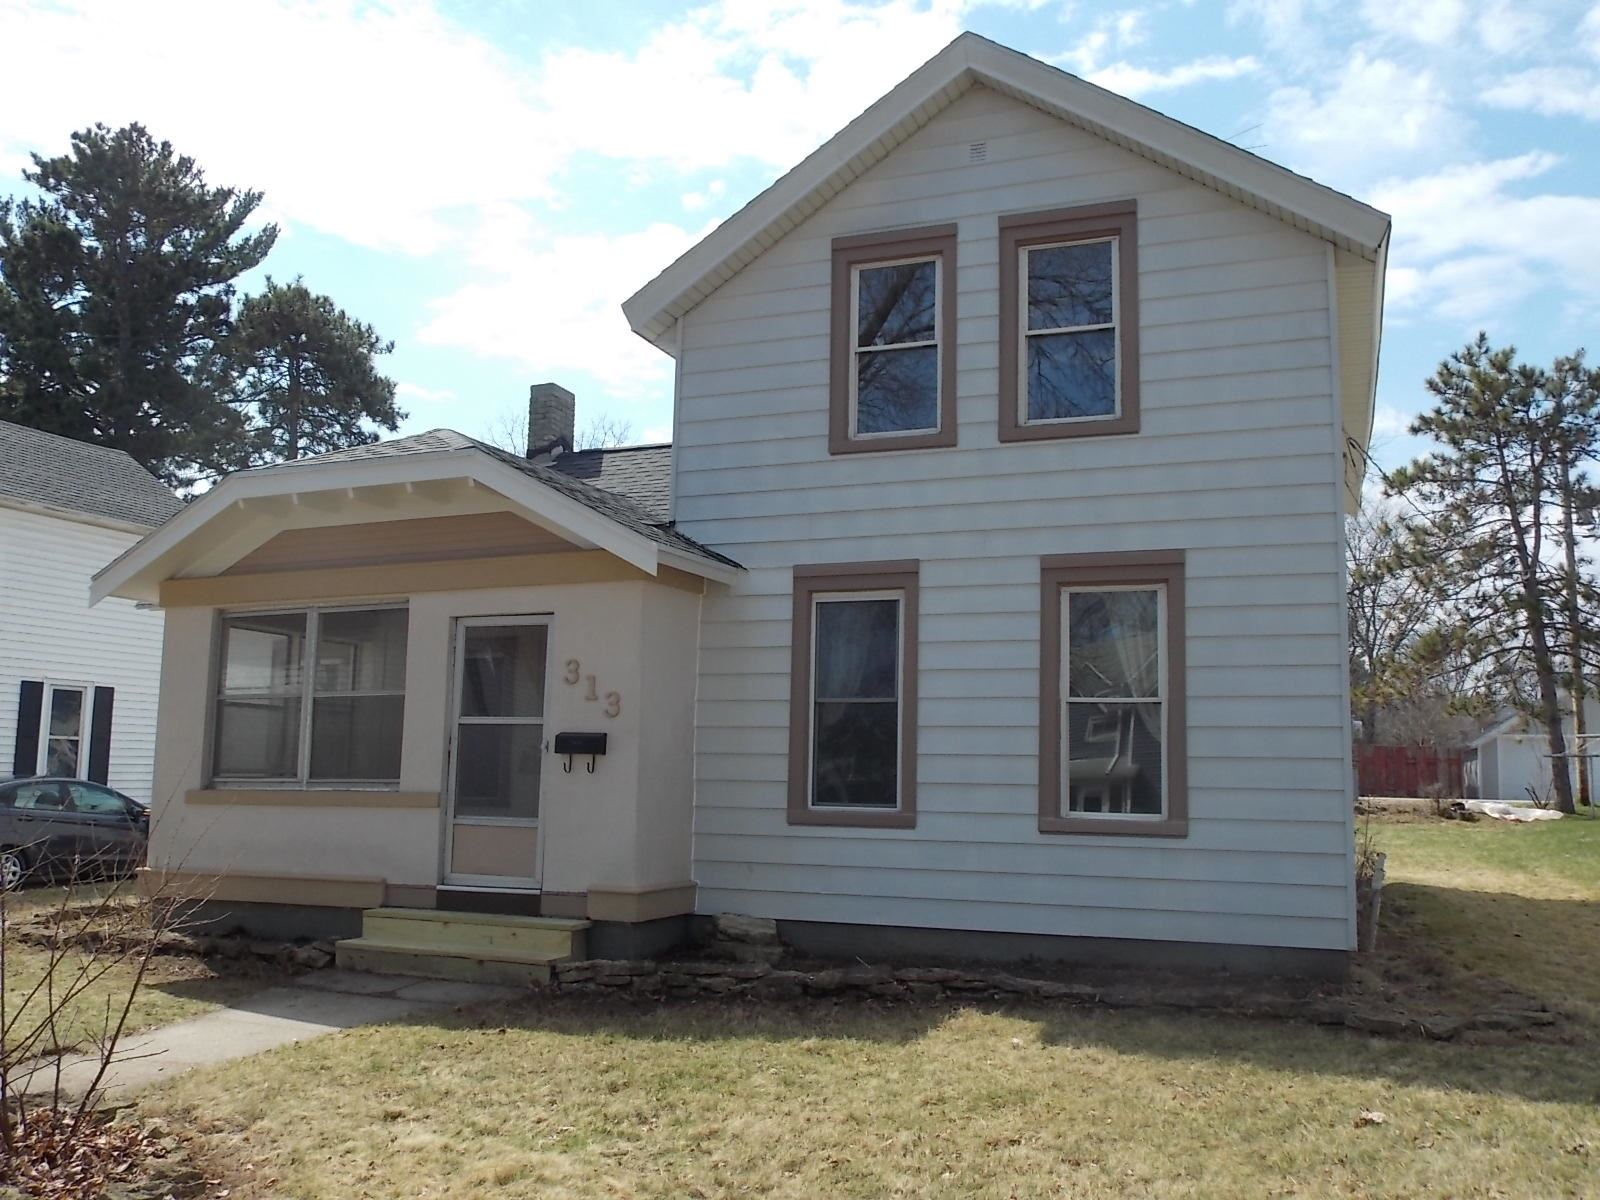 313 Lincoln St, Fort Atkinson, WI 53538 - #: 1683907